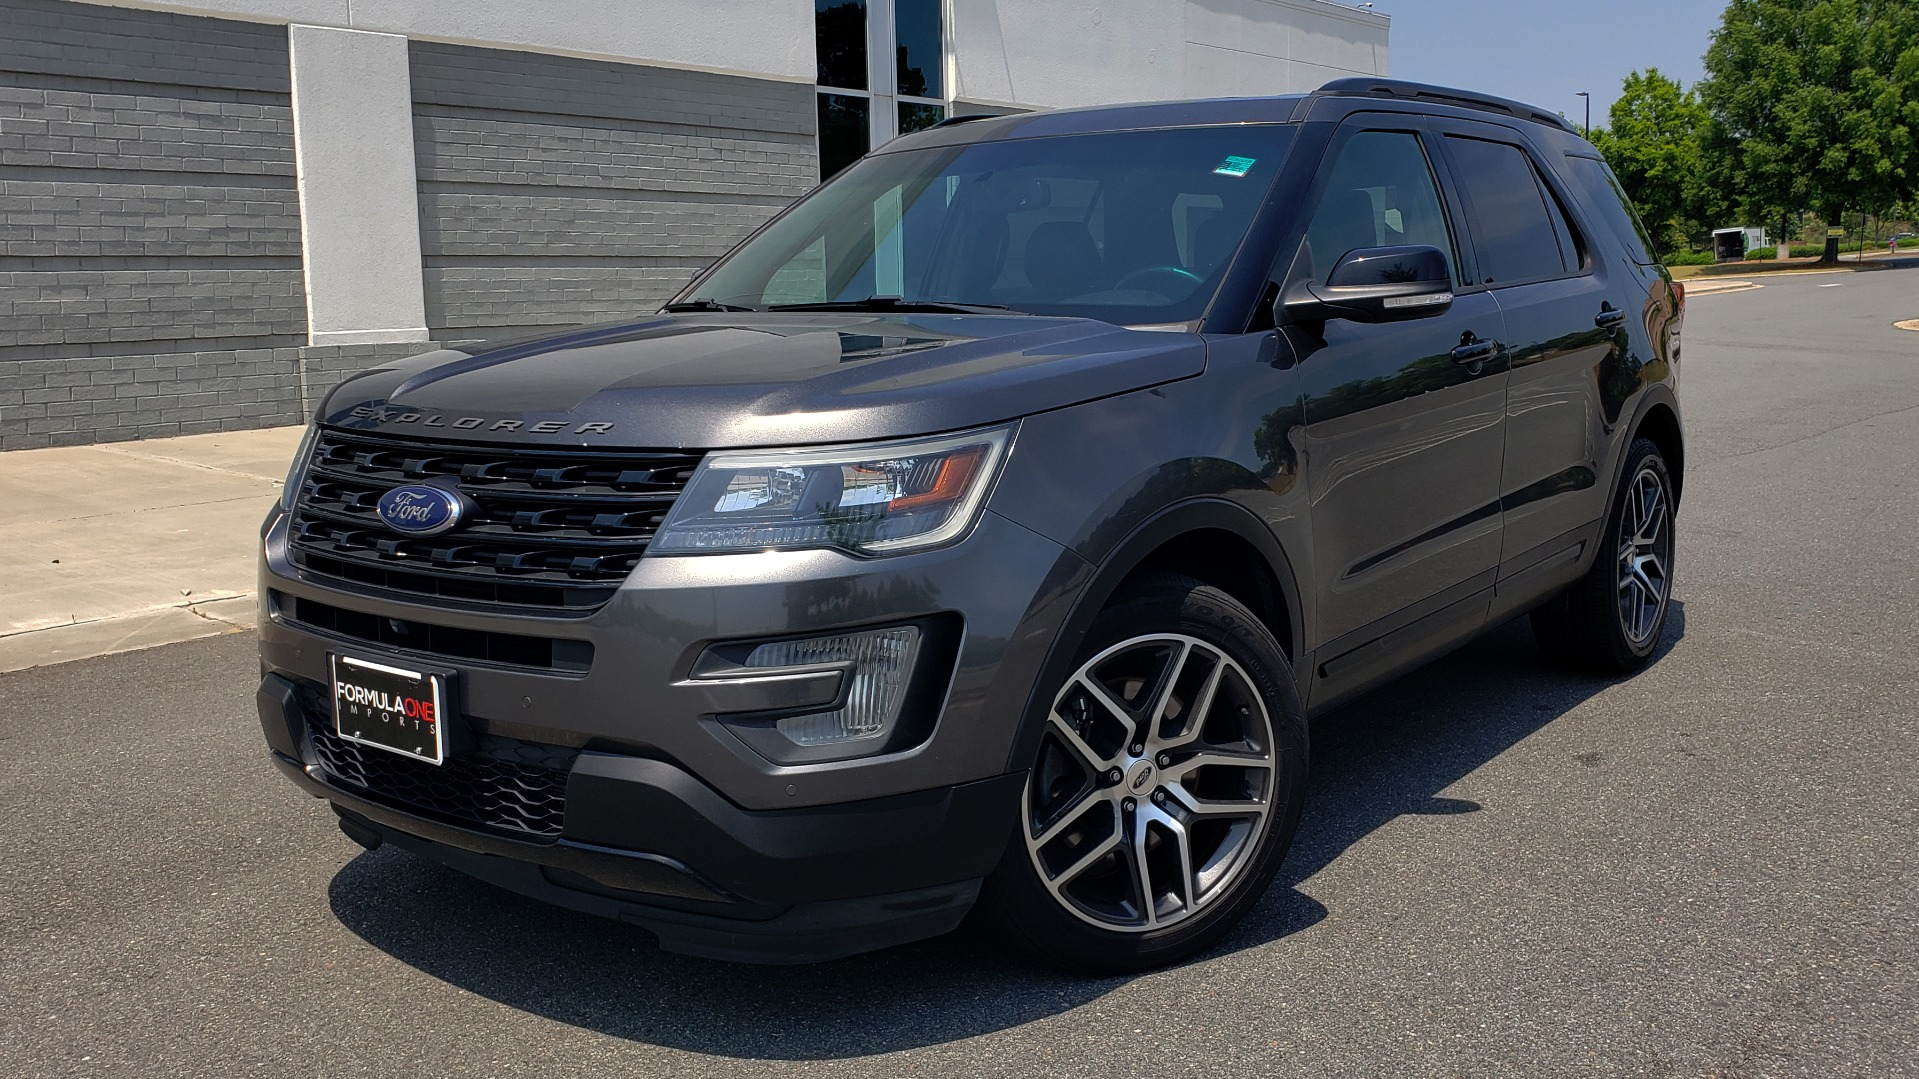 Used 2016 Ford EXPLORER SPORT 4WD / 3.5L ECOBOOST / 6-SPD AUTO / BSM / REARVIEW for sale Sold at Formula Imports in Charlotte NC 28227 1